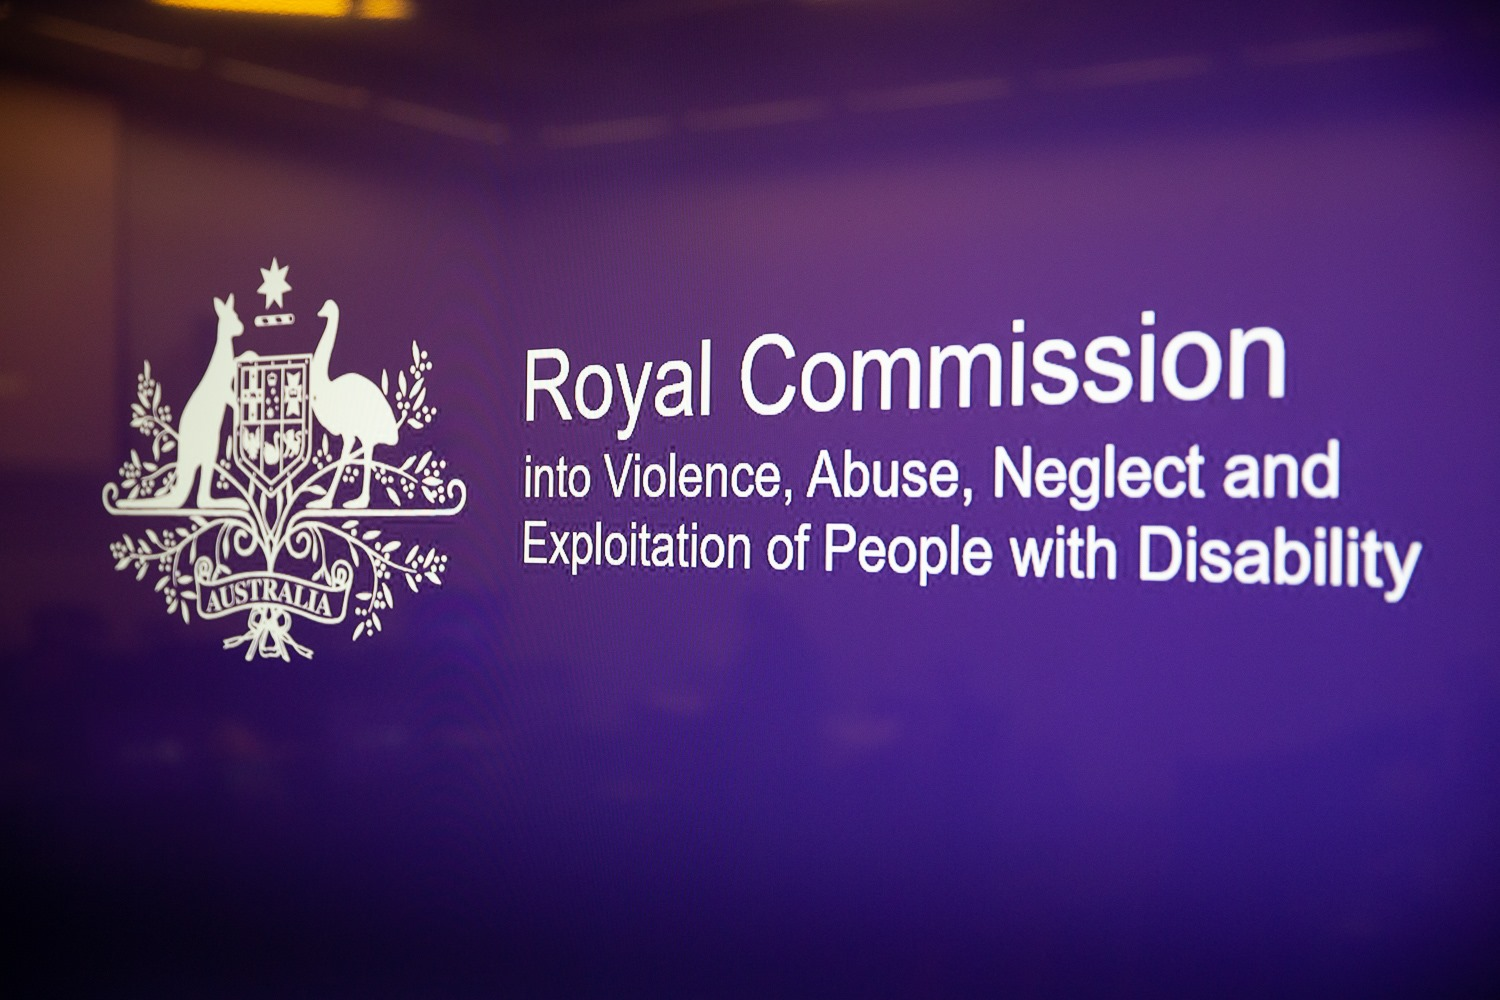 Royal Commission into Violence, Abuse, Neglect and Exploitation